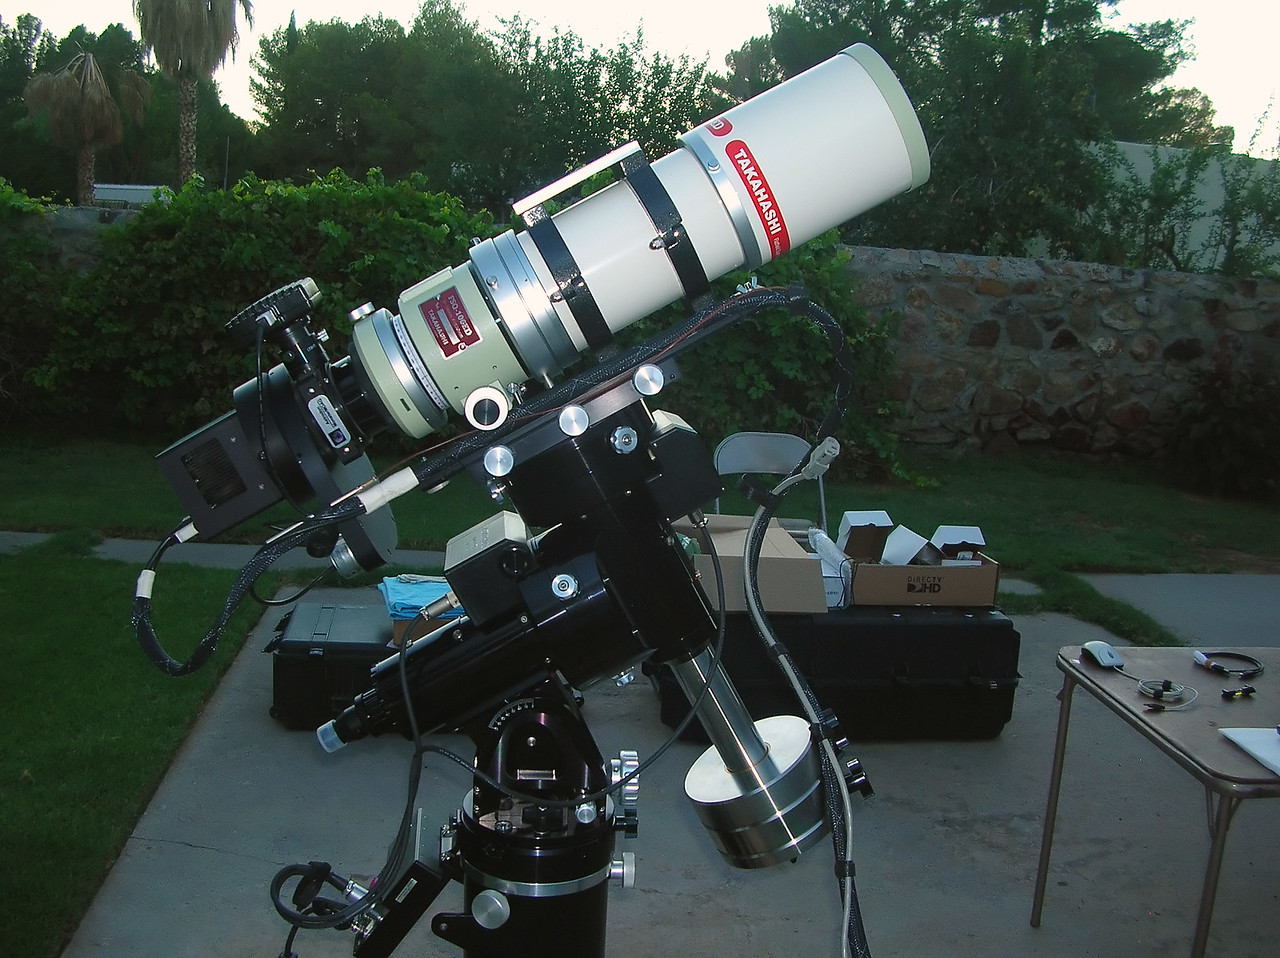 "Telescope: Takahashi FSQ-106ED with CAA<br /> Mount: Astro-Physics Mach1GTO with 1-7/8"" Counterweight Shaft<br /> Guider: Meade DSI Pro through Astrodon MMOAG<br /> CCD: Finger Lakes Instruments ML11002 CCD, with 65mm shutter<br /> Fiter Wheel: Finger Lakes Instruments CFW-2-7<br /> Filters: Baader 50.8mm LRGB & Astrodon 3nm Ha, OIII and SII<br /> Tripod: Losmandy HD, with custom machined adapter plate."